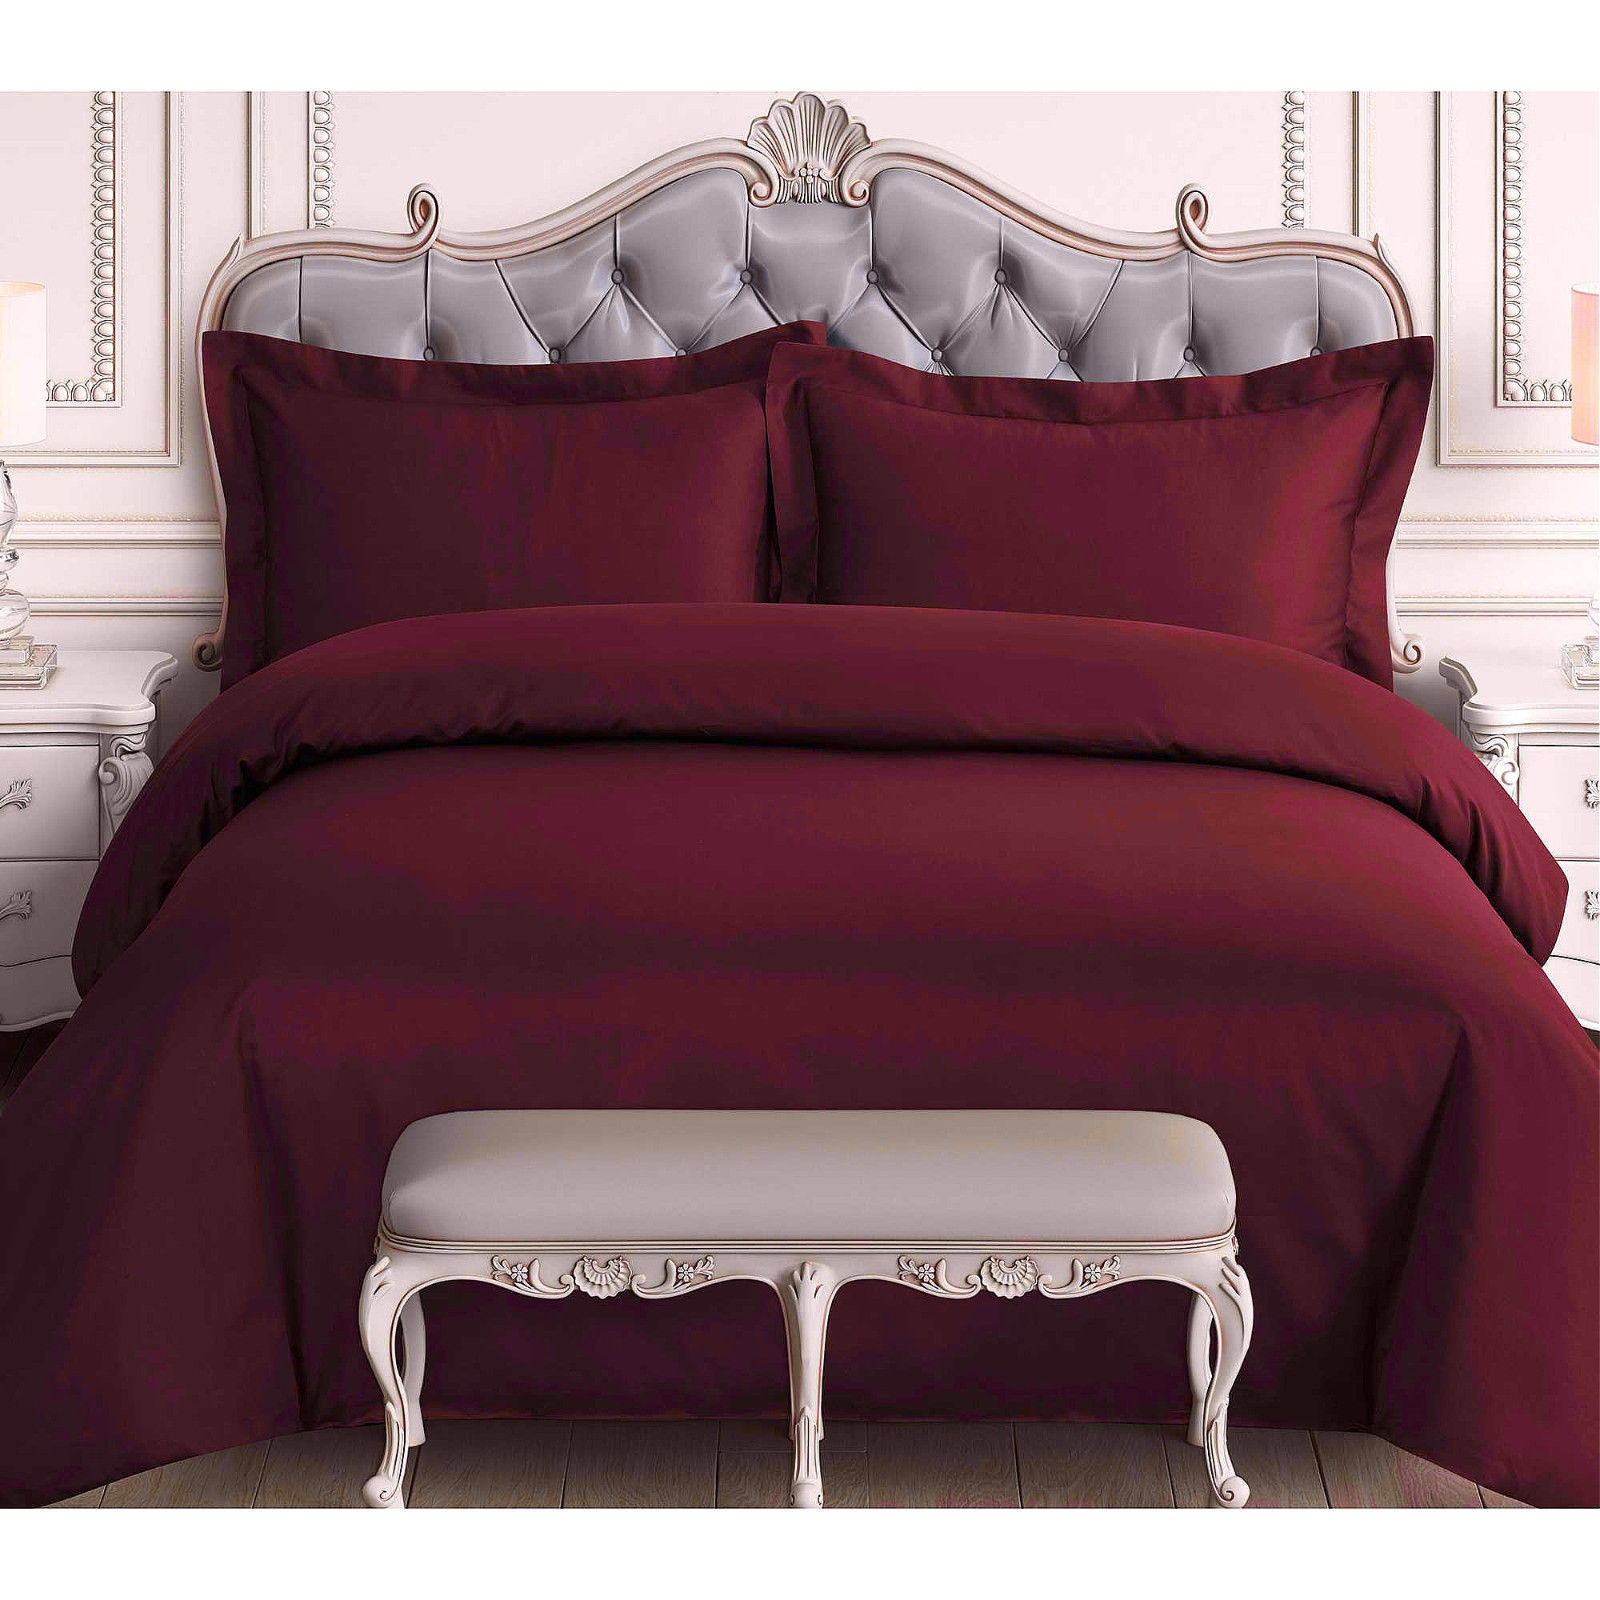 Dressing A Bed 2pc Set Solid Chic Duvet Comforter Bed Dressing Top Cover Bedroom Modern DÉcor Twin Brown